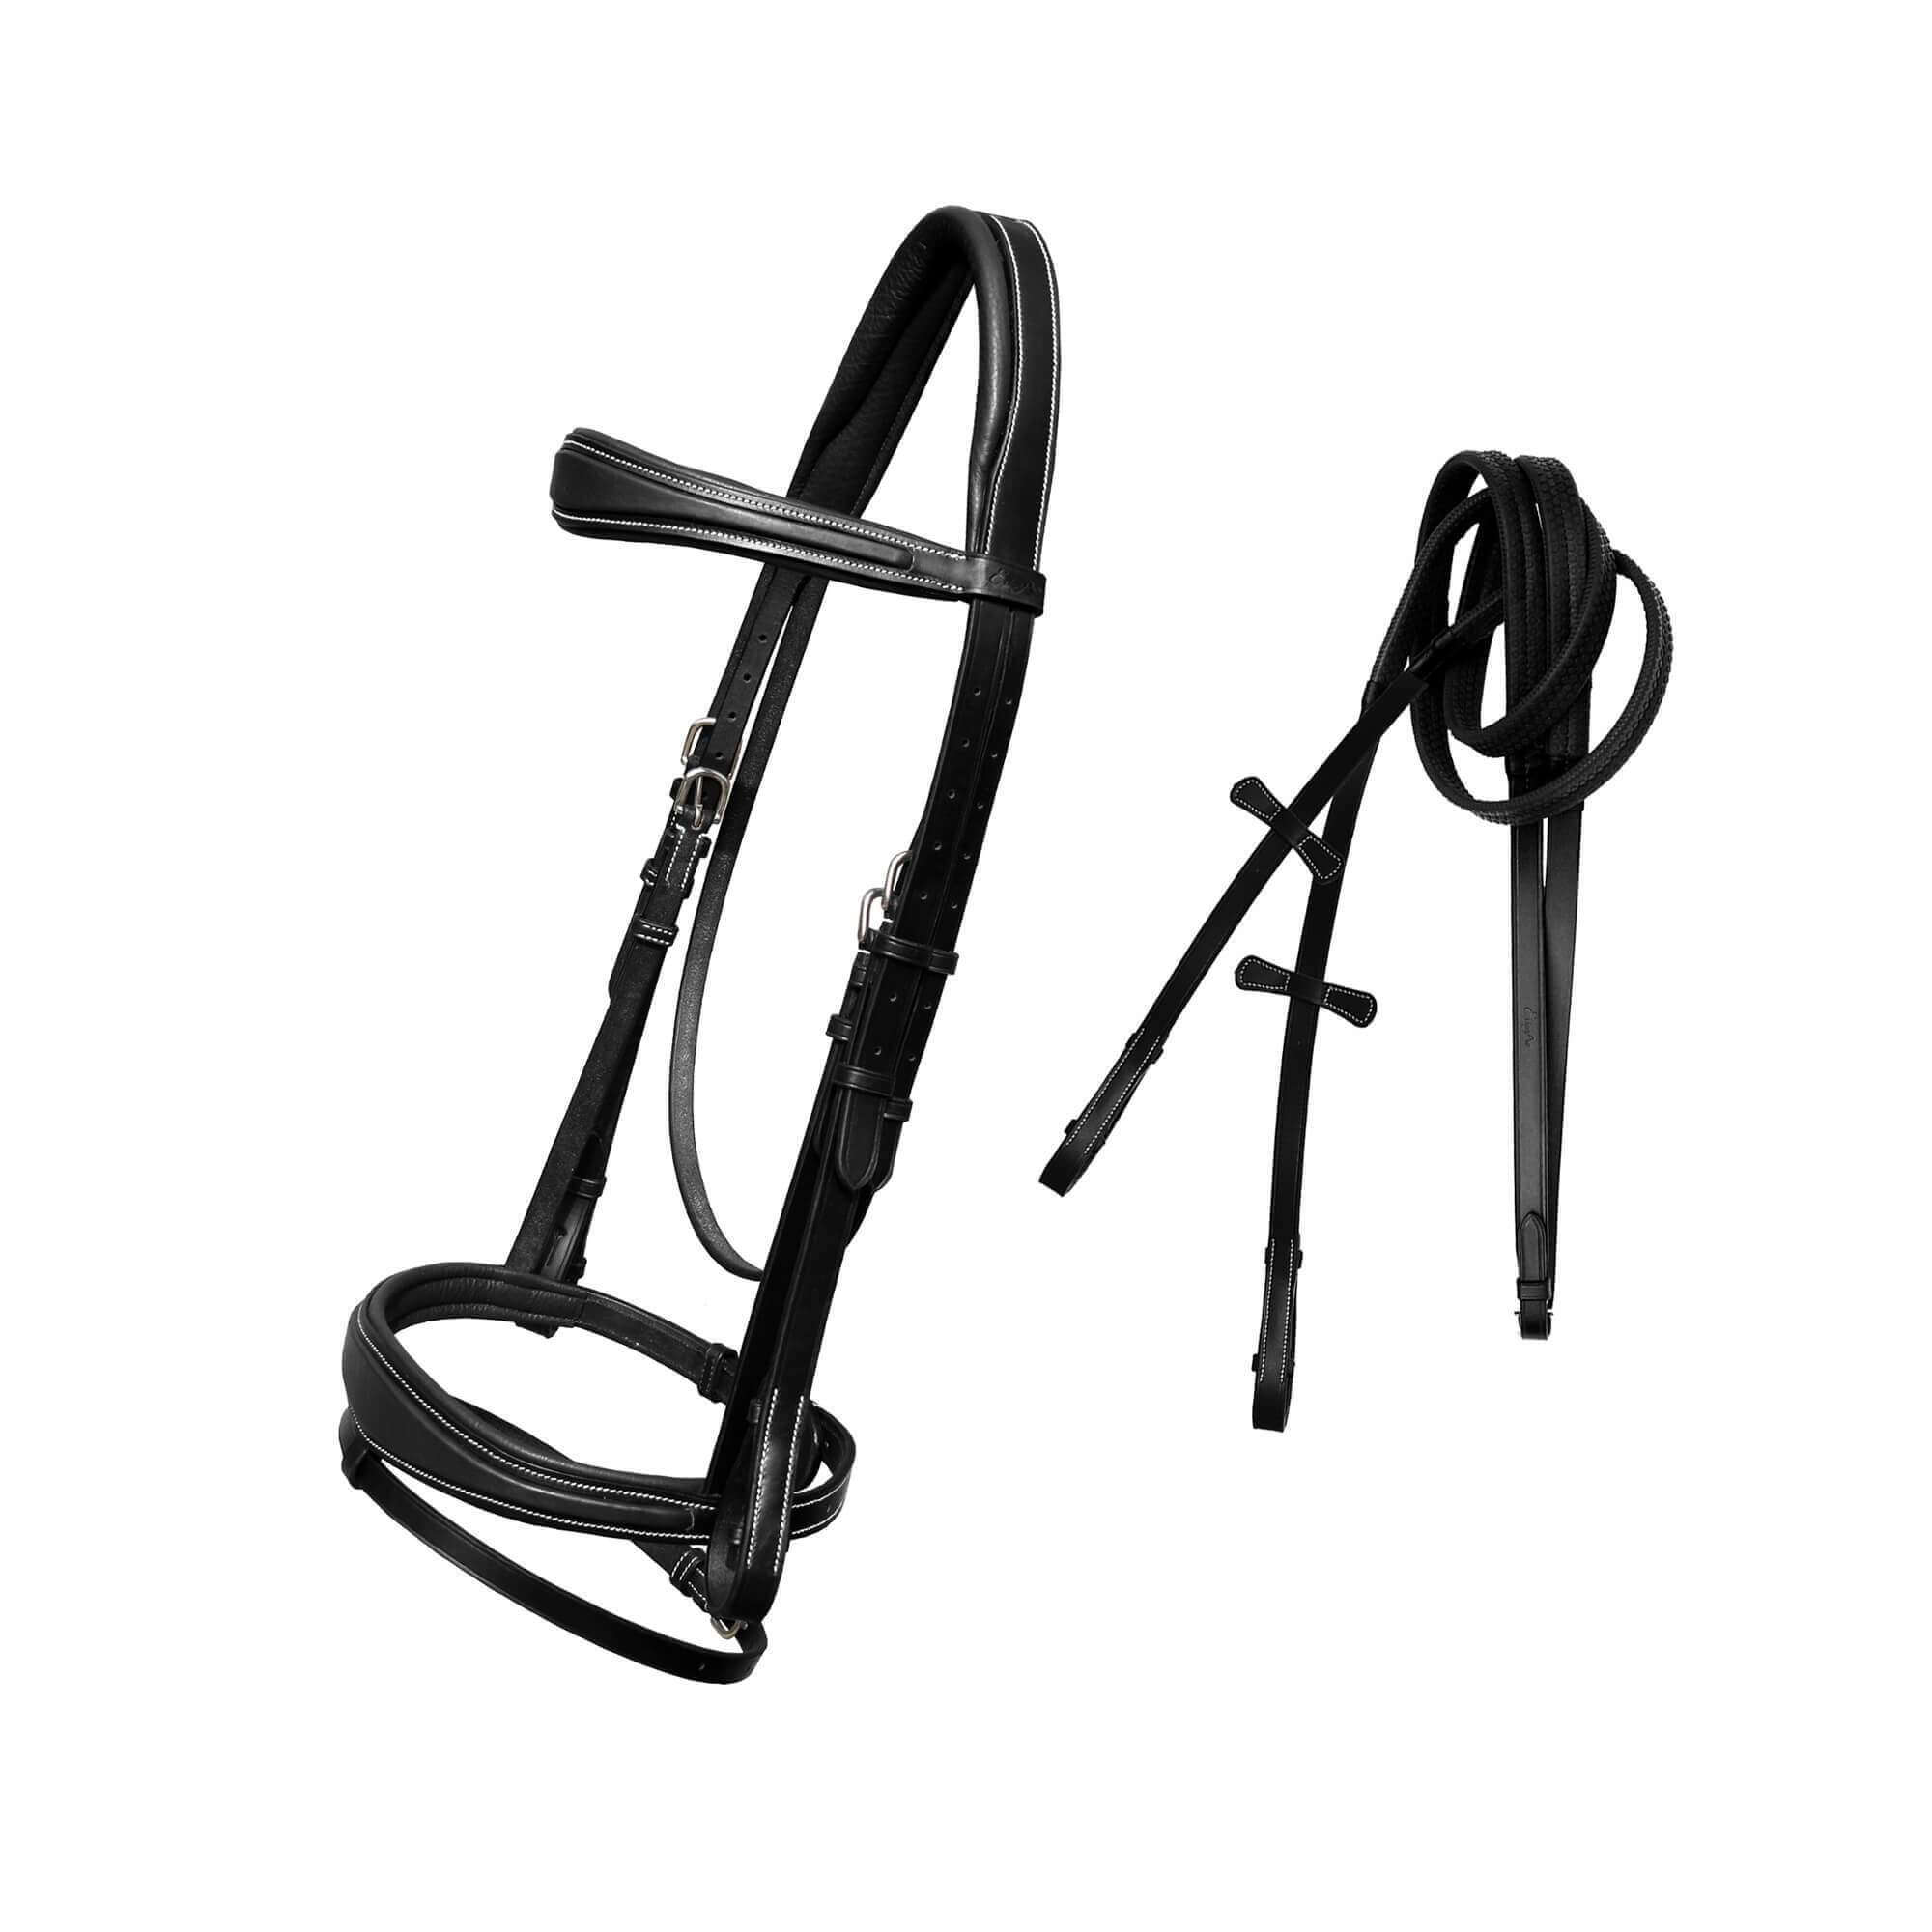 ExionPro Raised Anatomic Bridle with Rubber Reins - Bridles & Reins